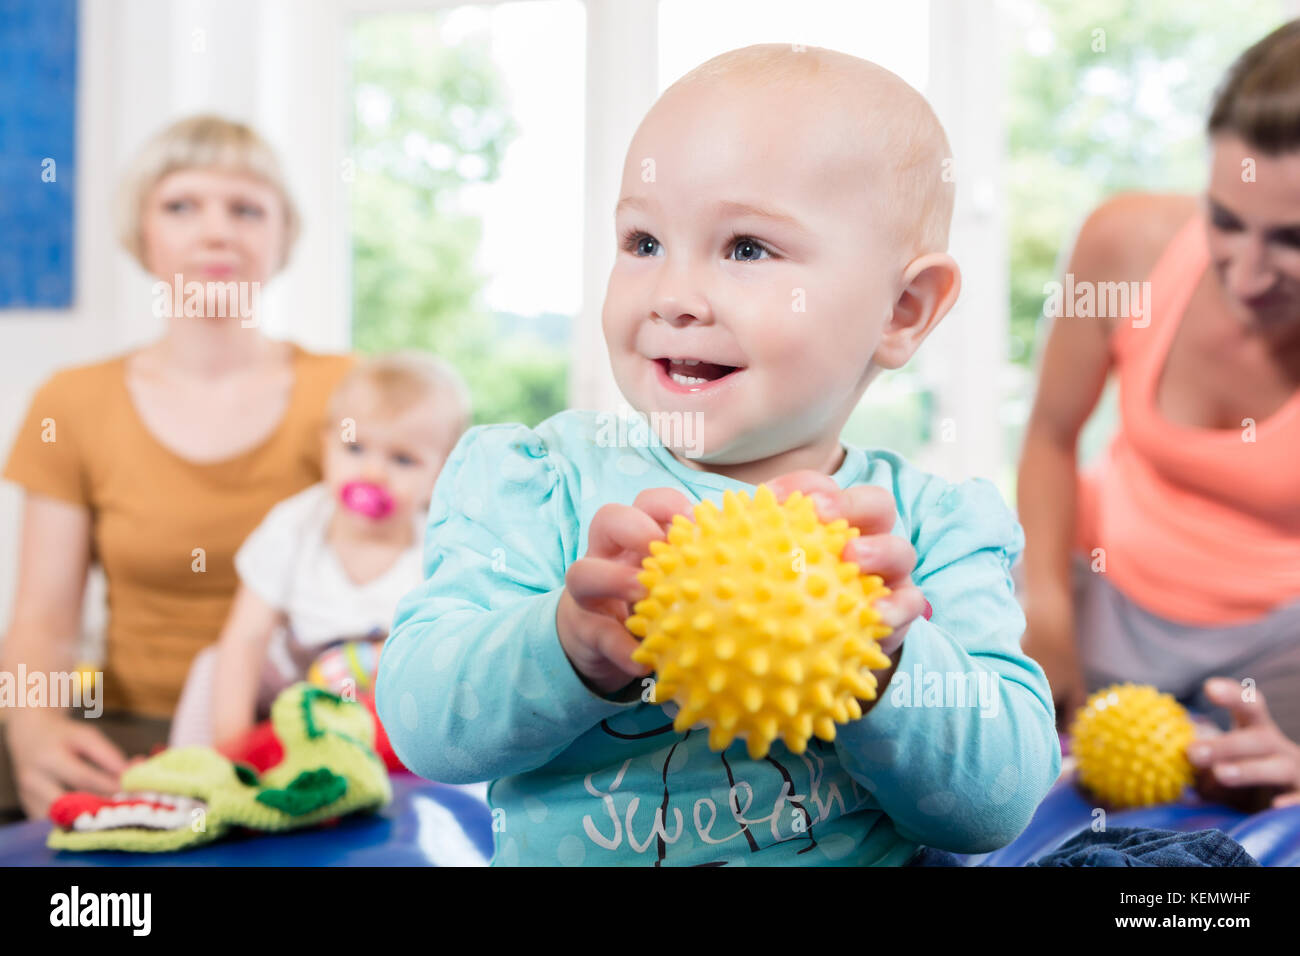 Babies with pacifier in toddler group playing with toys - Stock Image